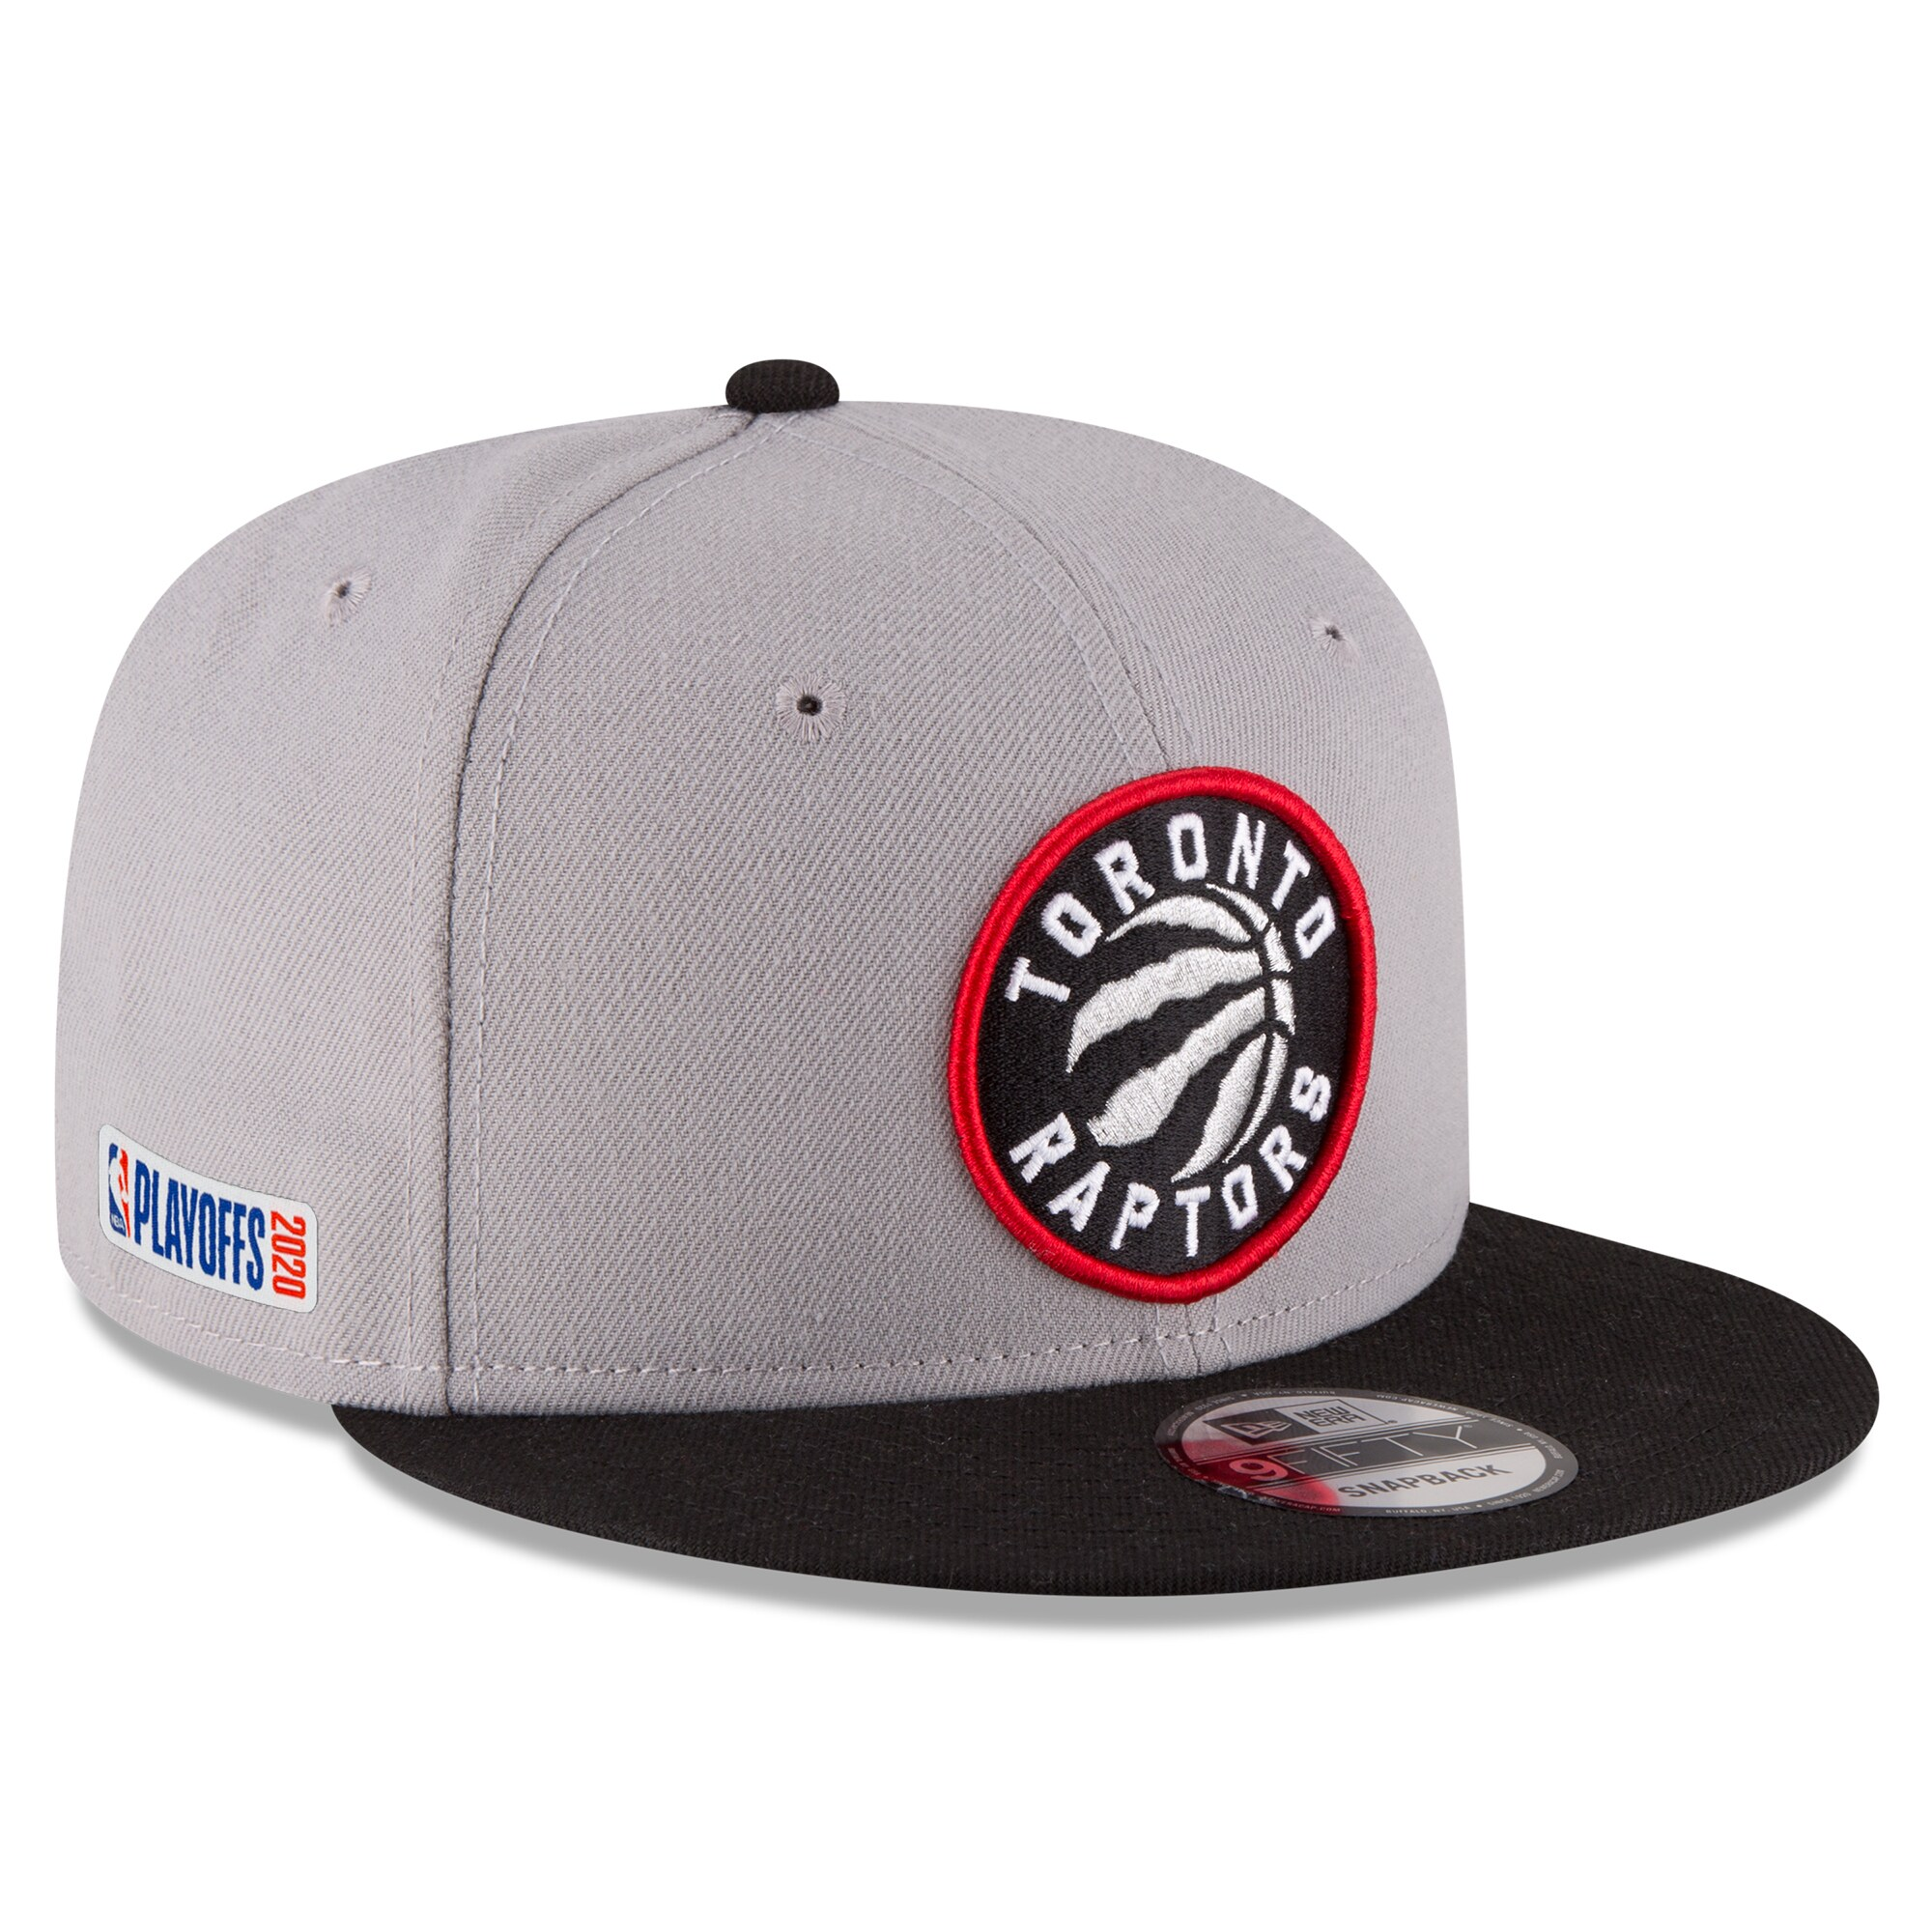 Toronto Raptors New Era 2020 NBA Playoffs Bound 2-Tone 9FIFTY Snapback Adjustable Hat - Gray